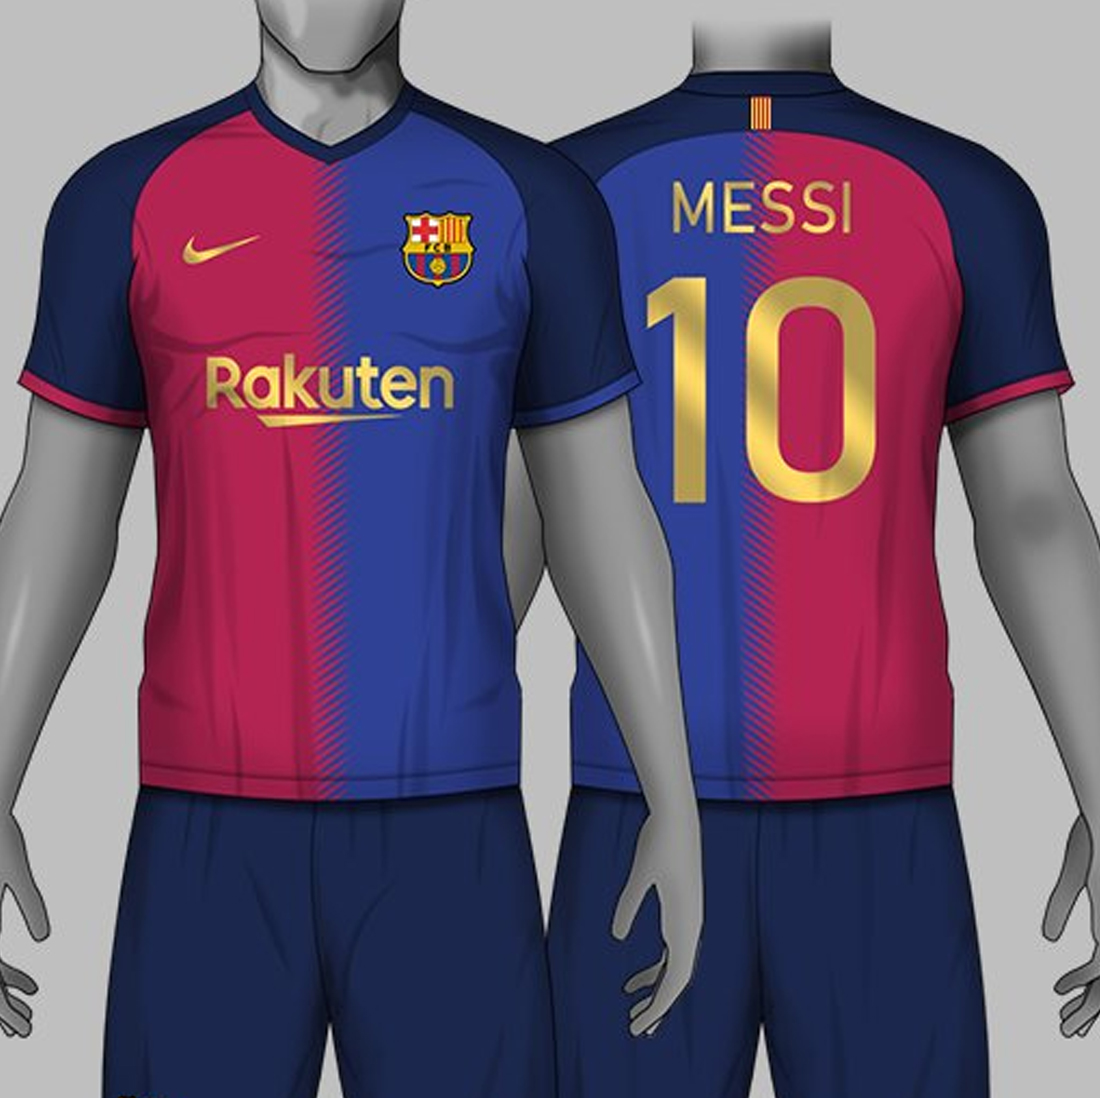 479ab1305 The first Nike FC Barcelona home kit concept is inspired by Barcelona s 1997  -98 Kappa